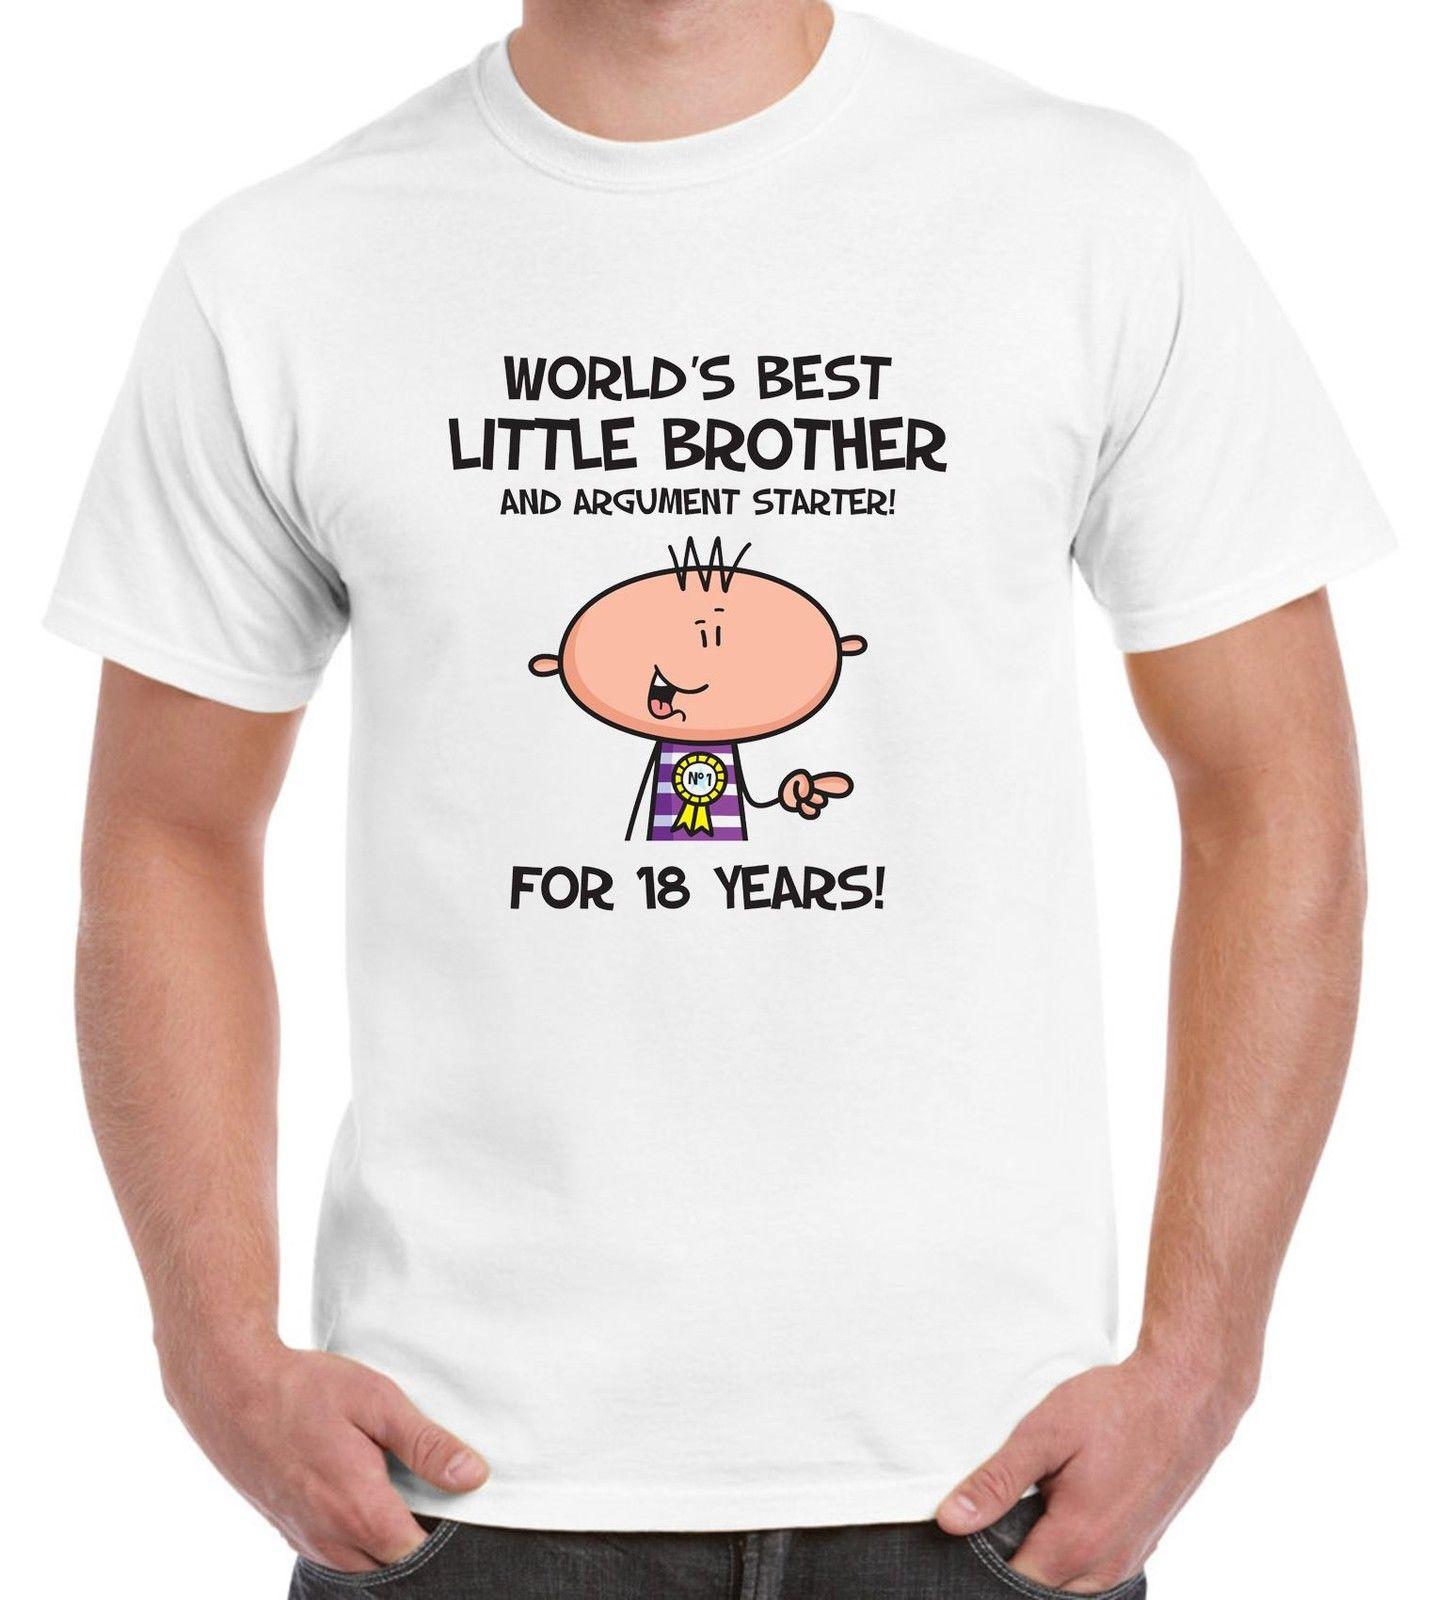 Worlds Best Little Brother MenS 18th Birthday Present T Shirt Gift Cartoon Men Unisex New Fashion Tshirt Loose Size Silly Make Your Own Tee